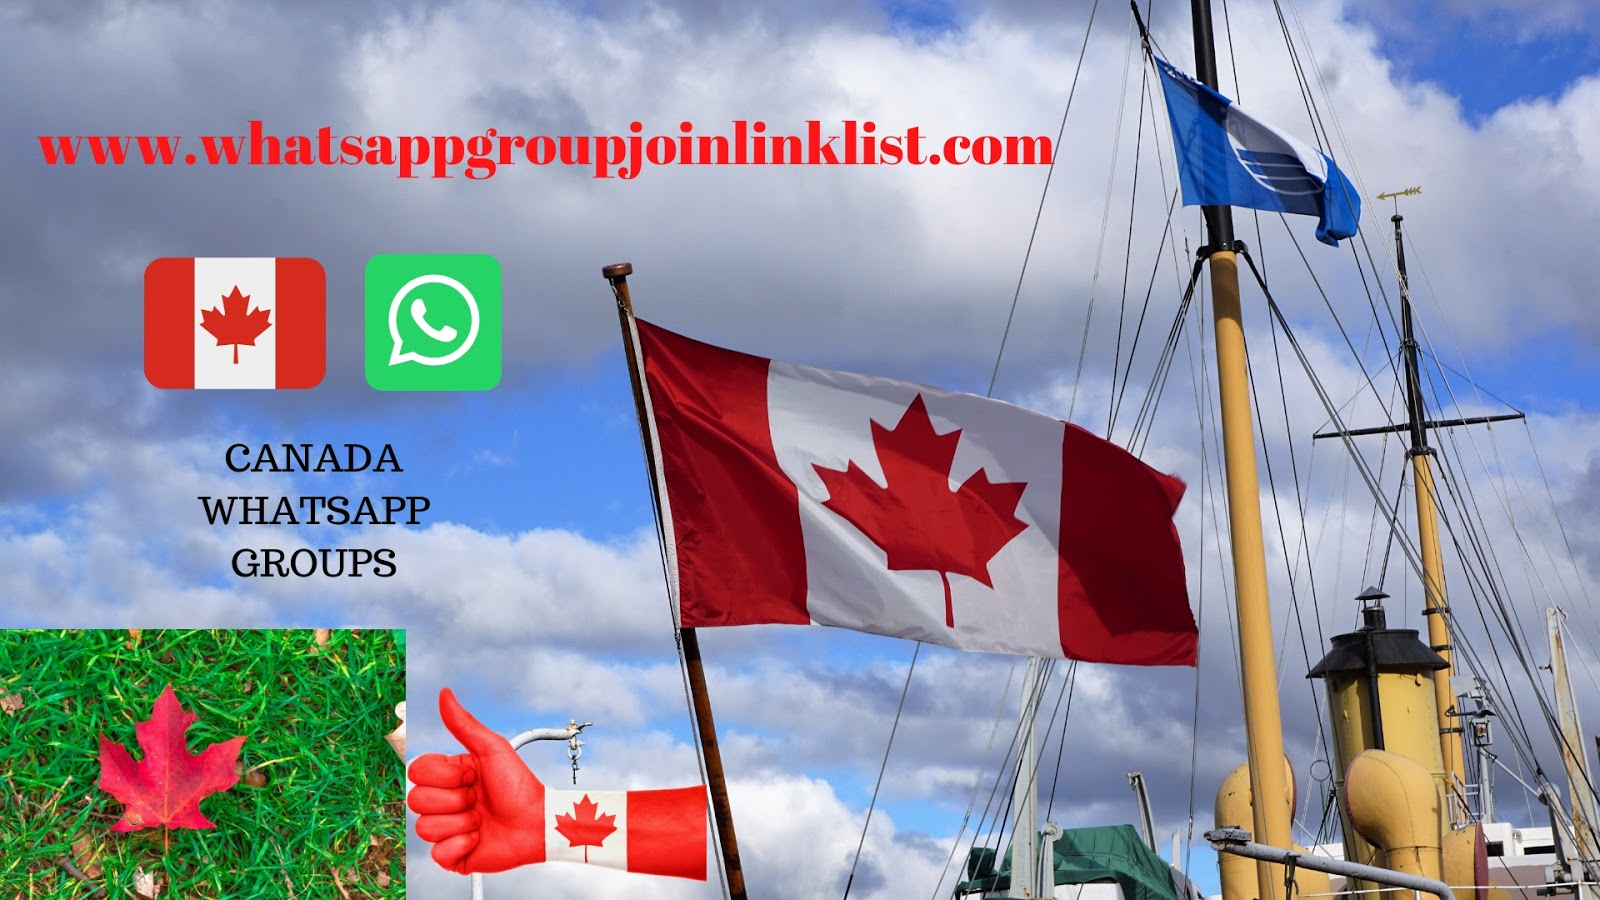 Canada WhatsApp Group Join Link List